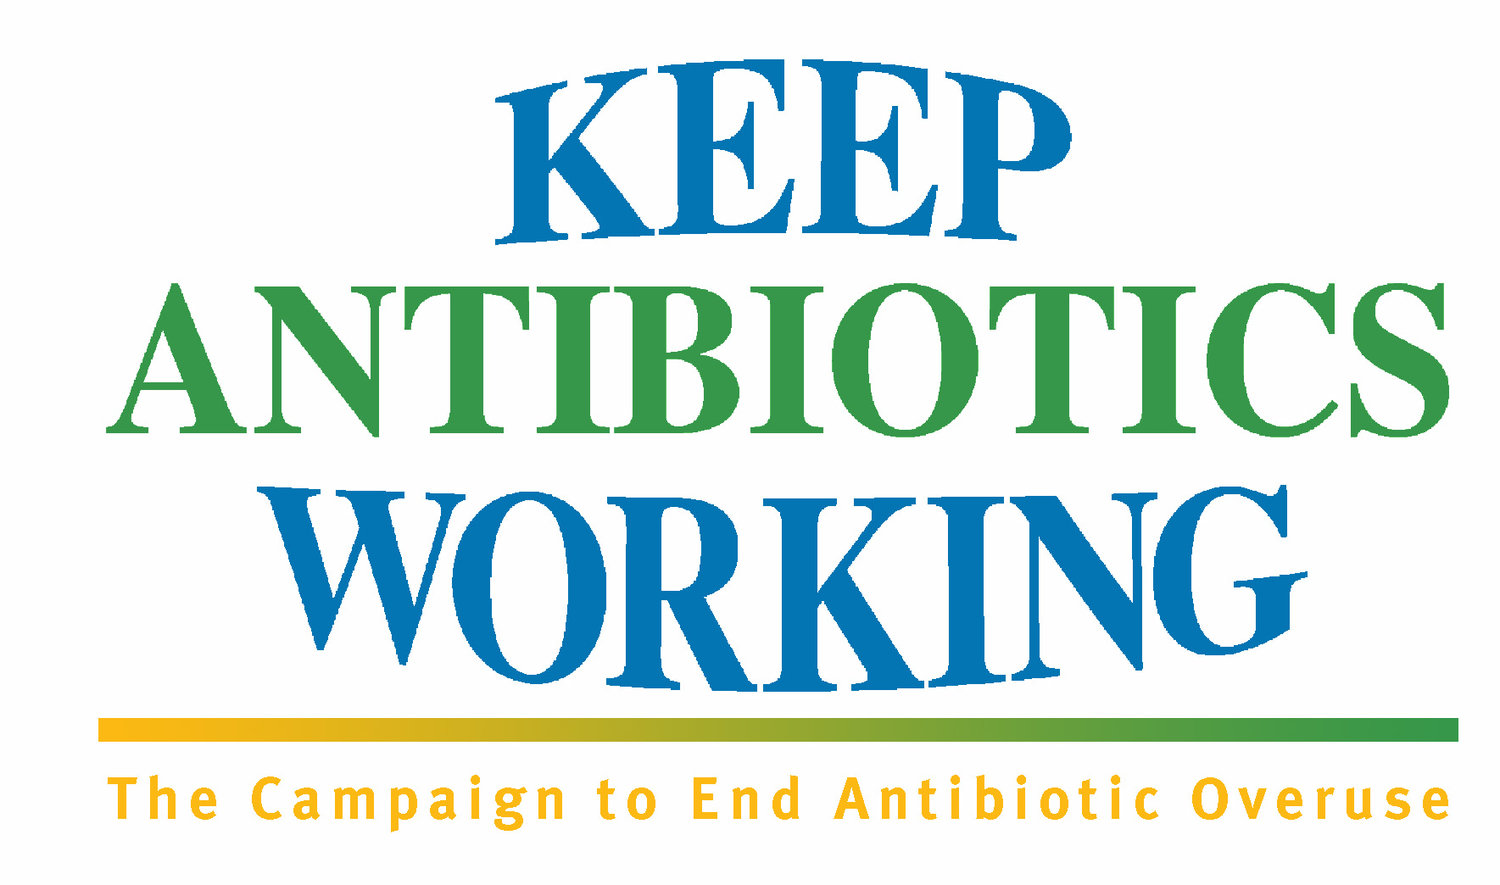 Keep Antibiotics Working